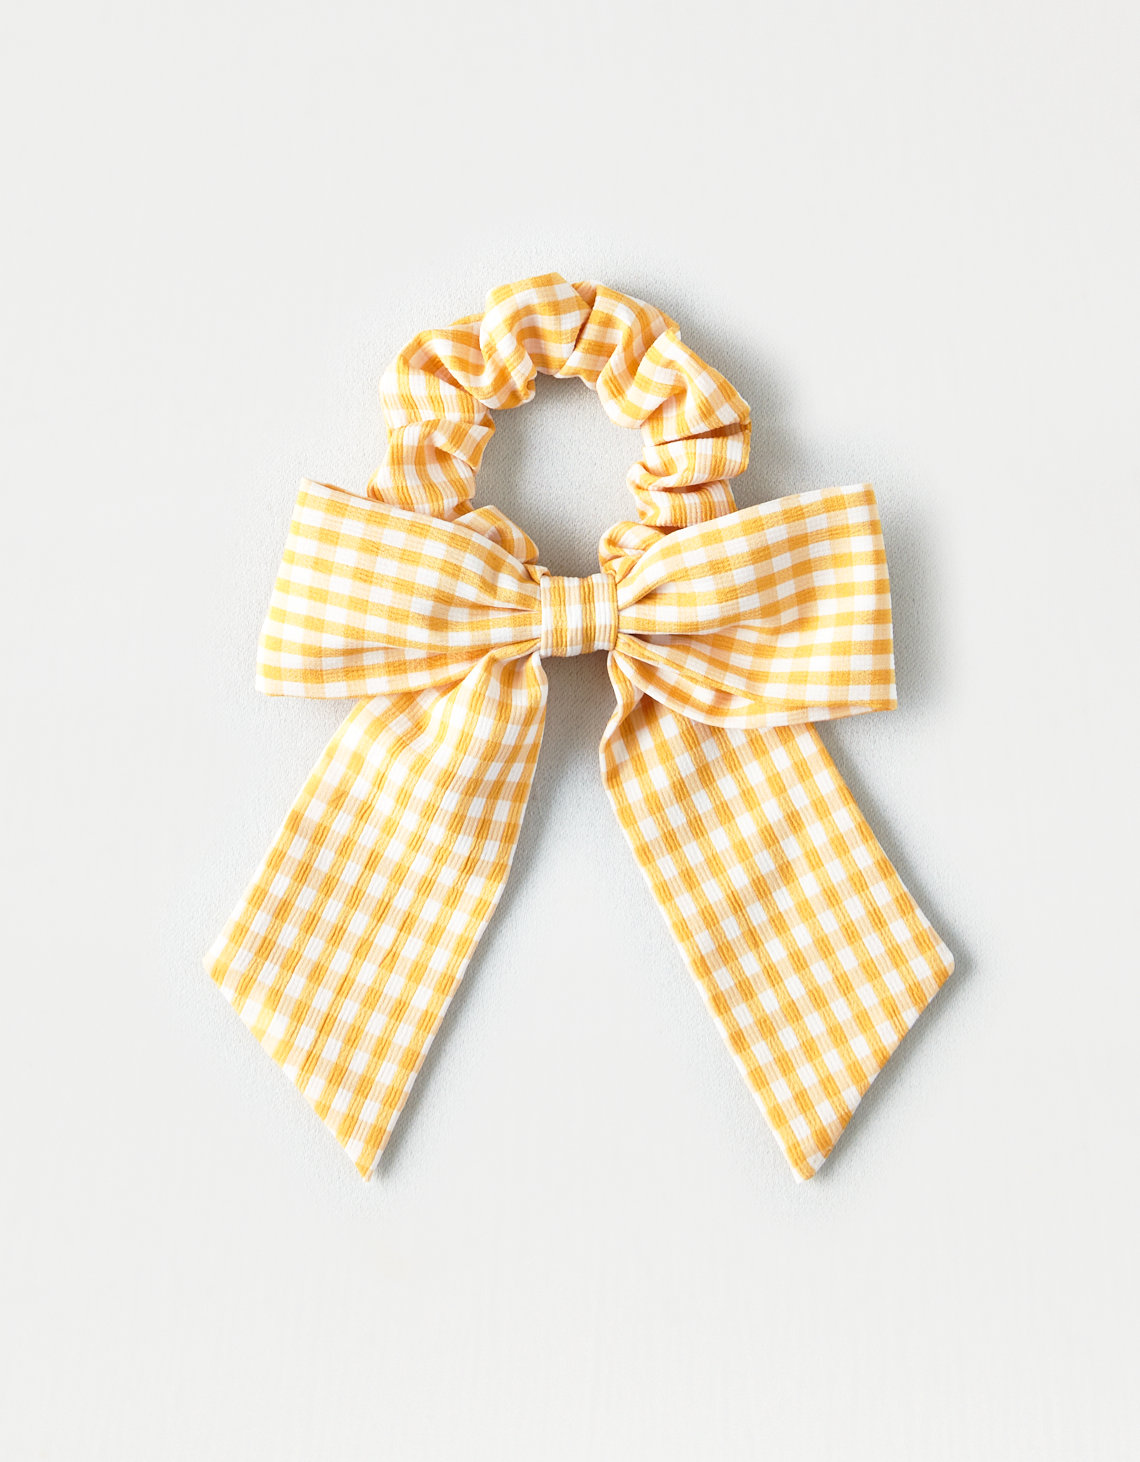 Clips Clasps 2 Girls Yellow And White Check Handm Ribbon School Hair Bows